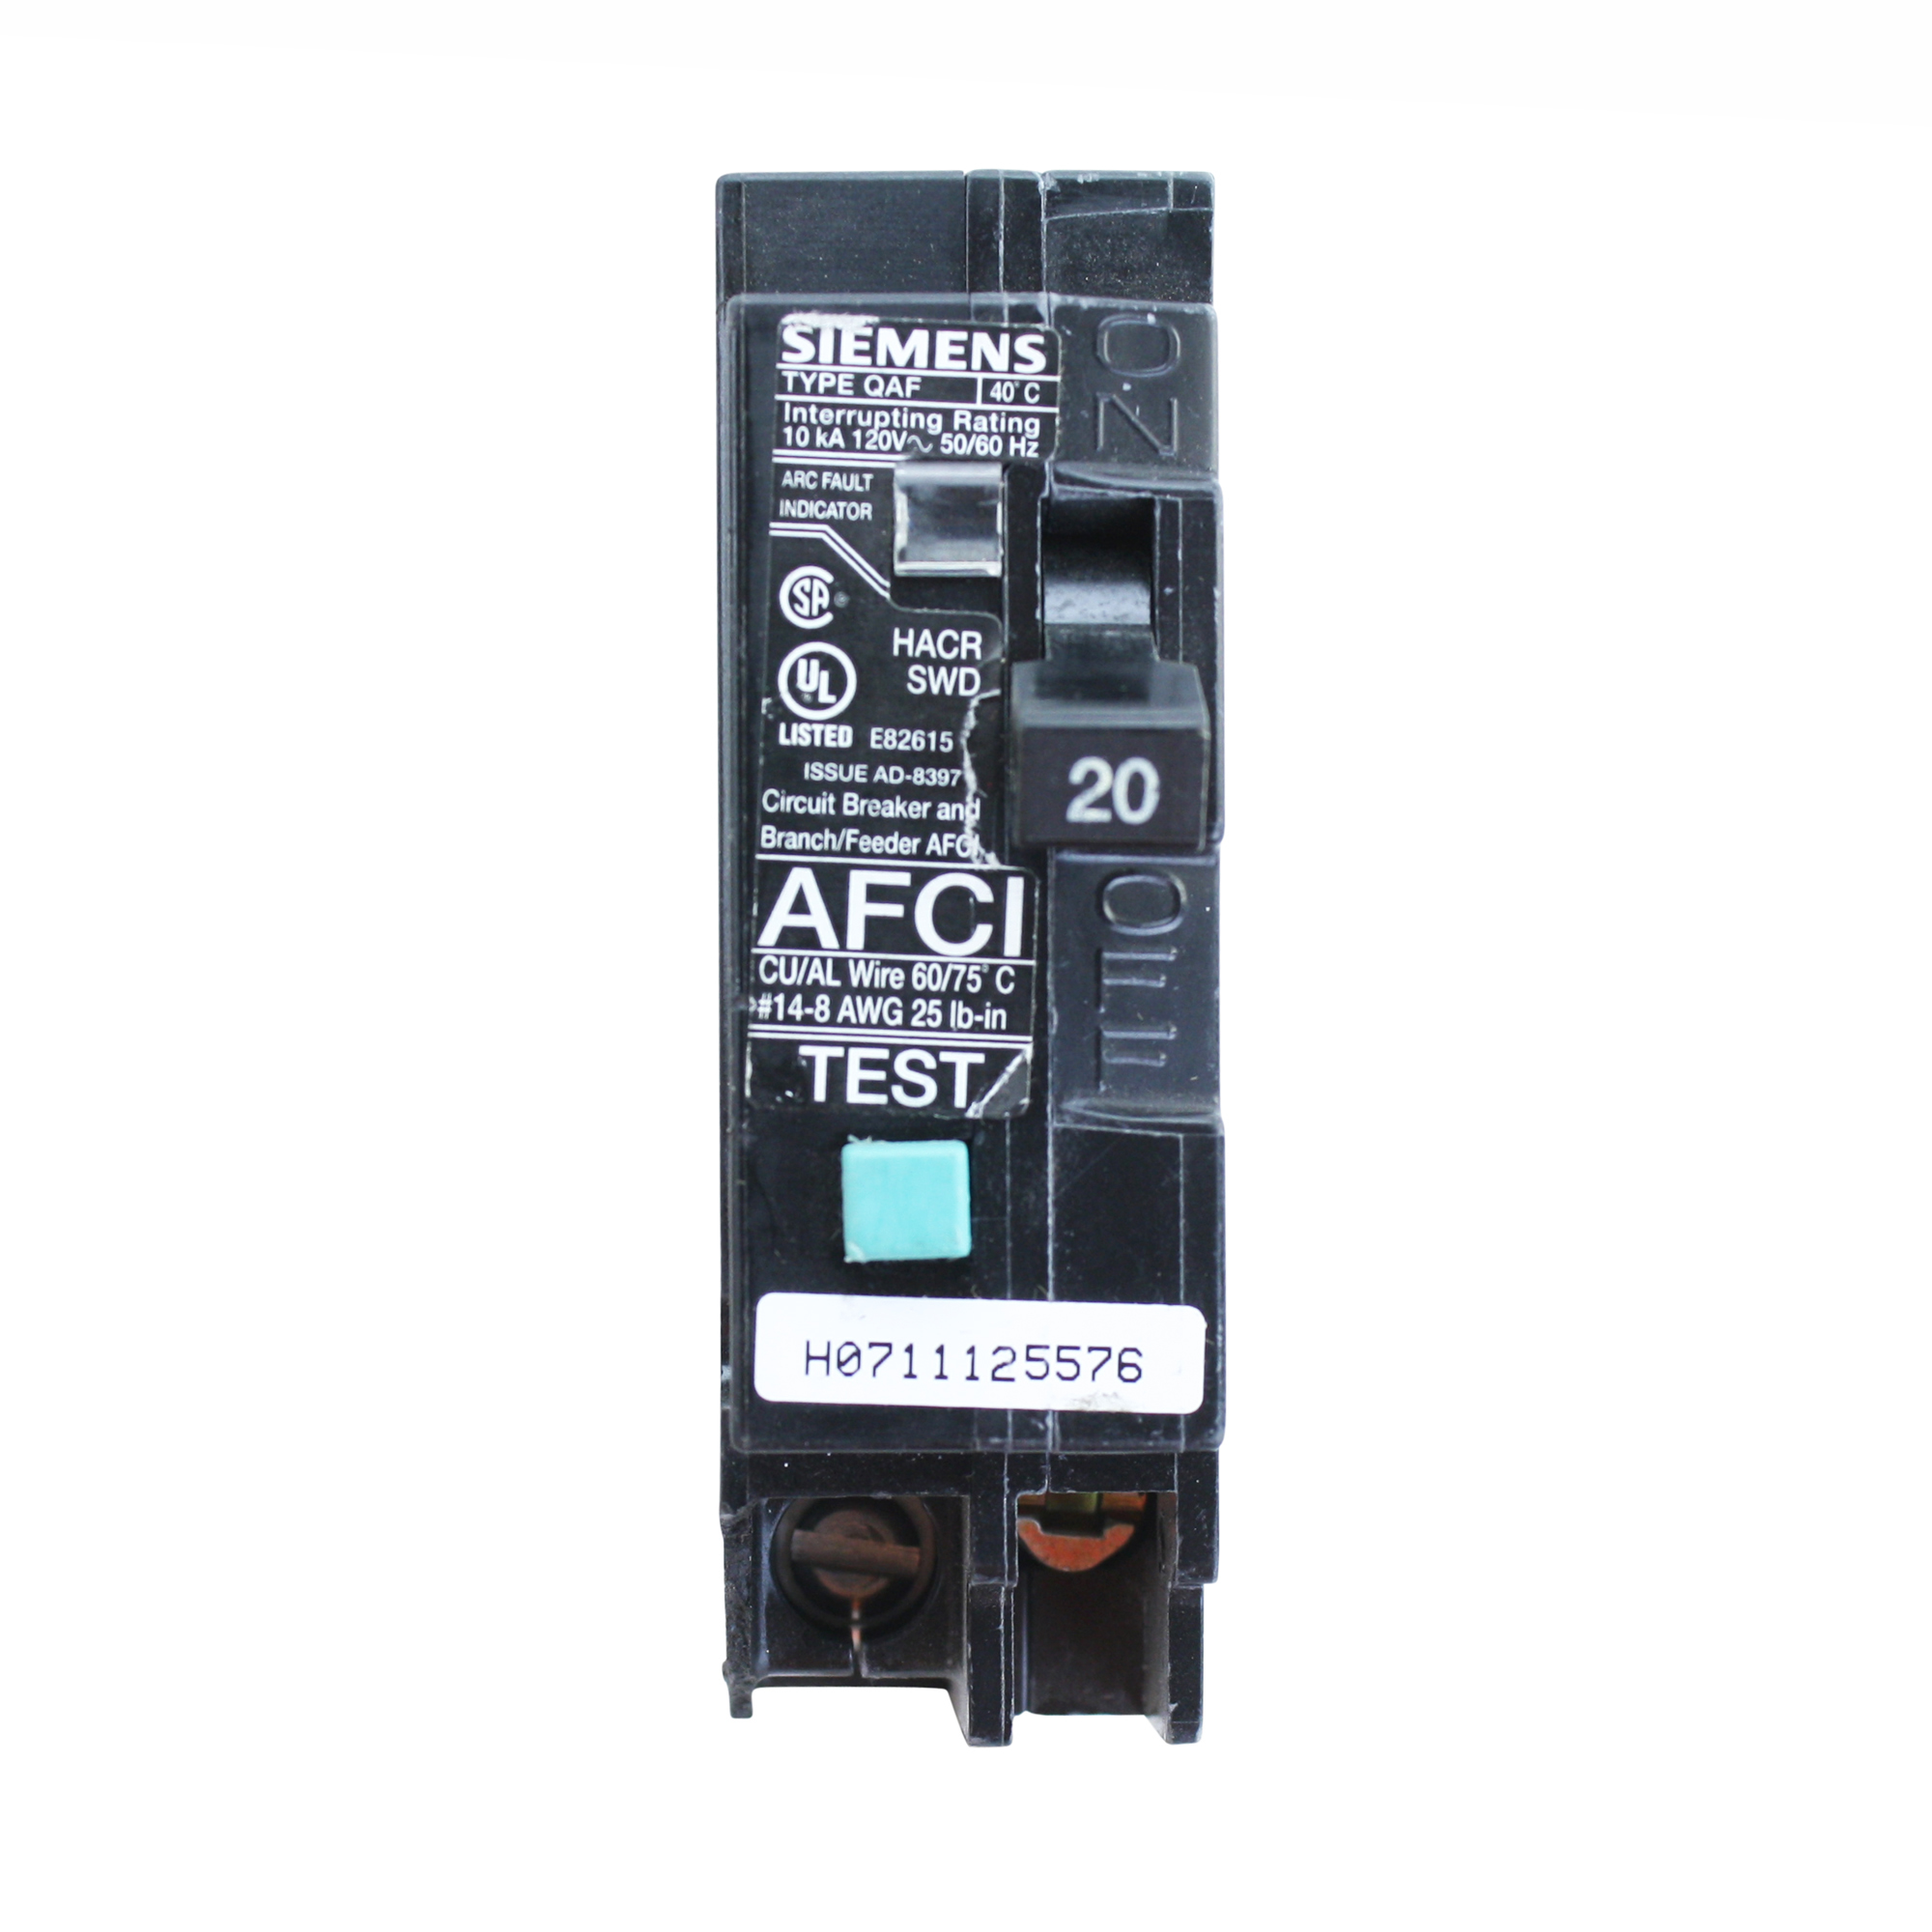 Afci Fact Sheet The Afci The Afci Is An Arc Fault Circuit Interrupter